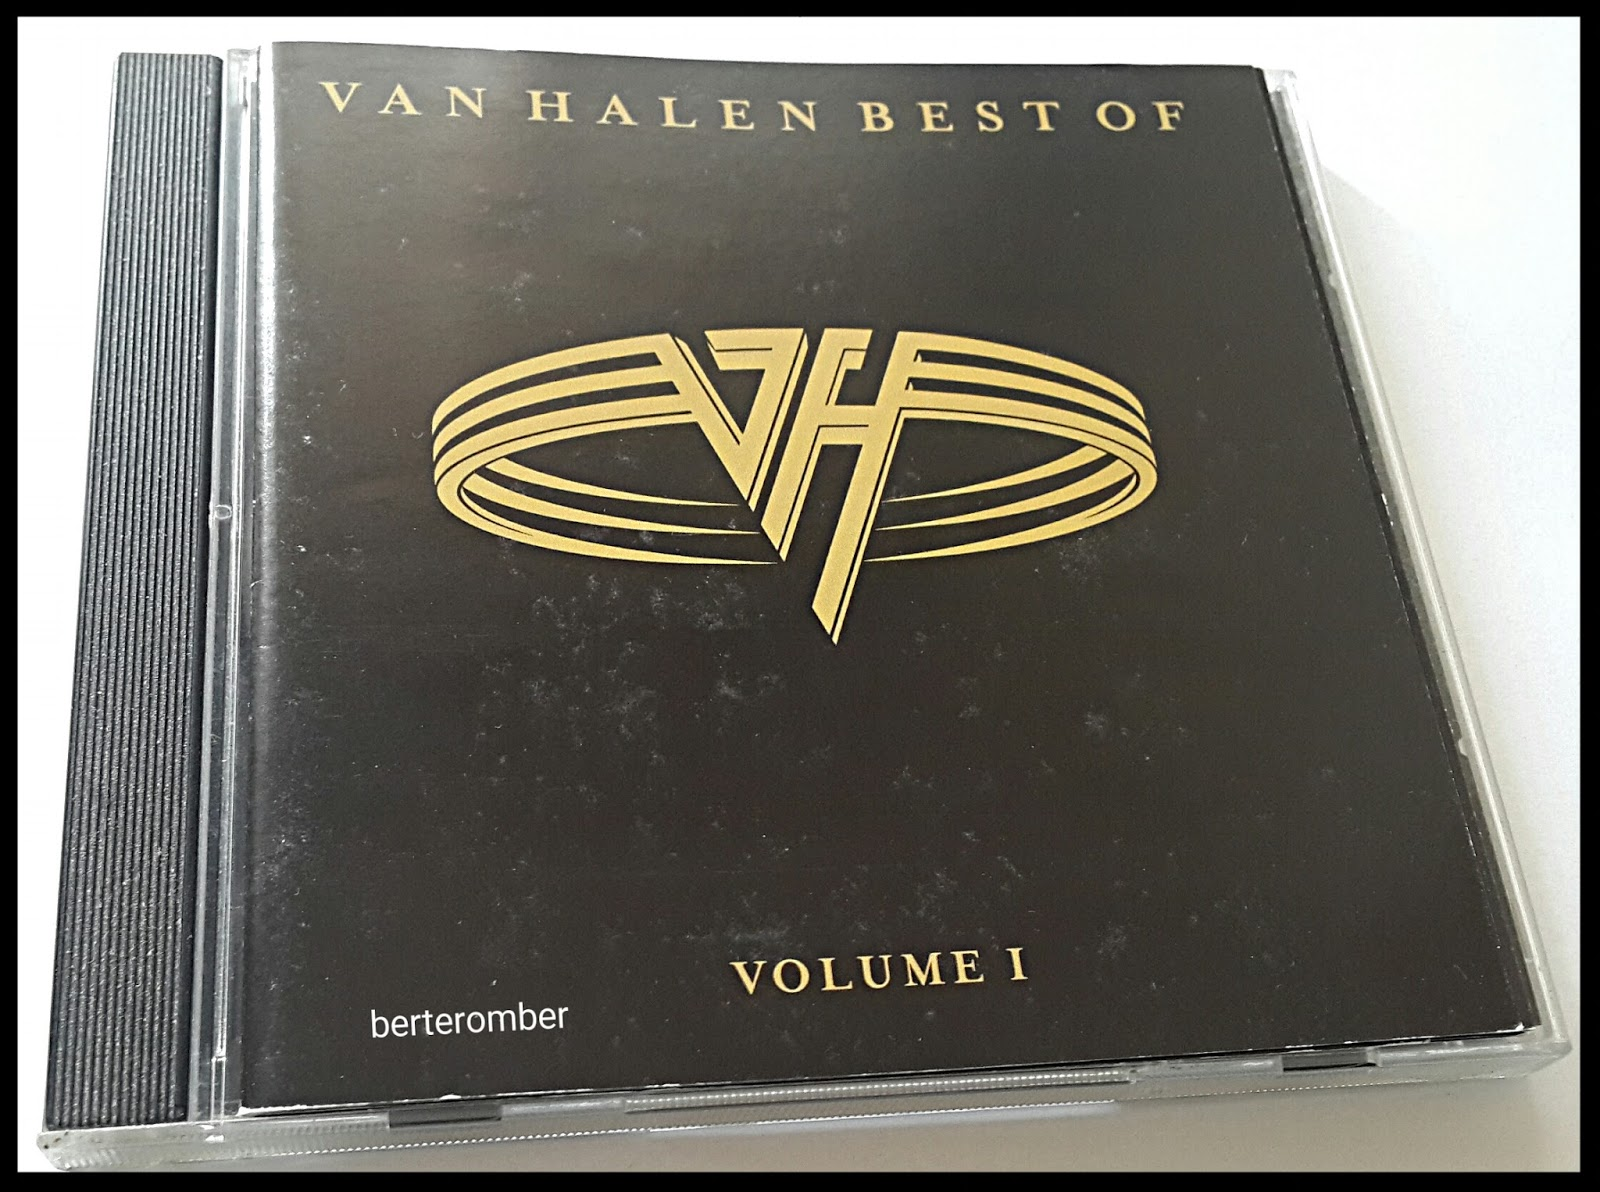 an analysis of the best of van halen volume i album by van halen Van halen followed the album with their first live record, the double-album van halen live: right here, right now in 1993 by the spring 1995 release of balance, tensions between eddie van halen and sammy hagar had grown considerably.